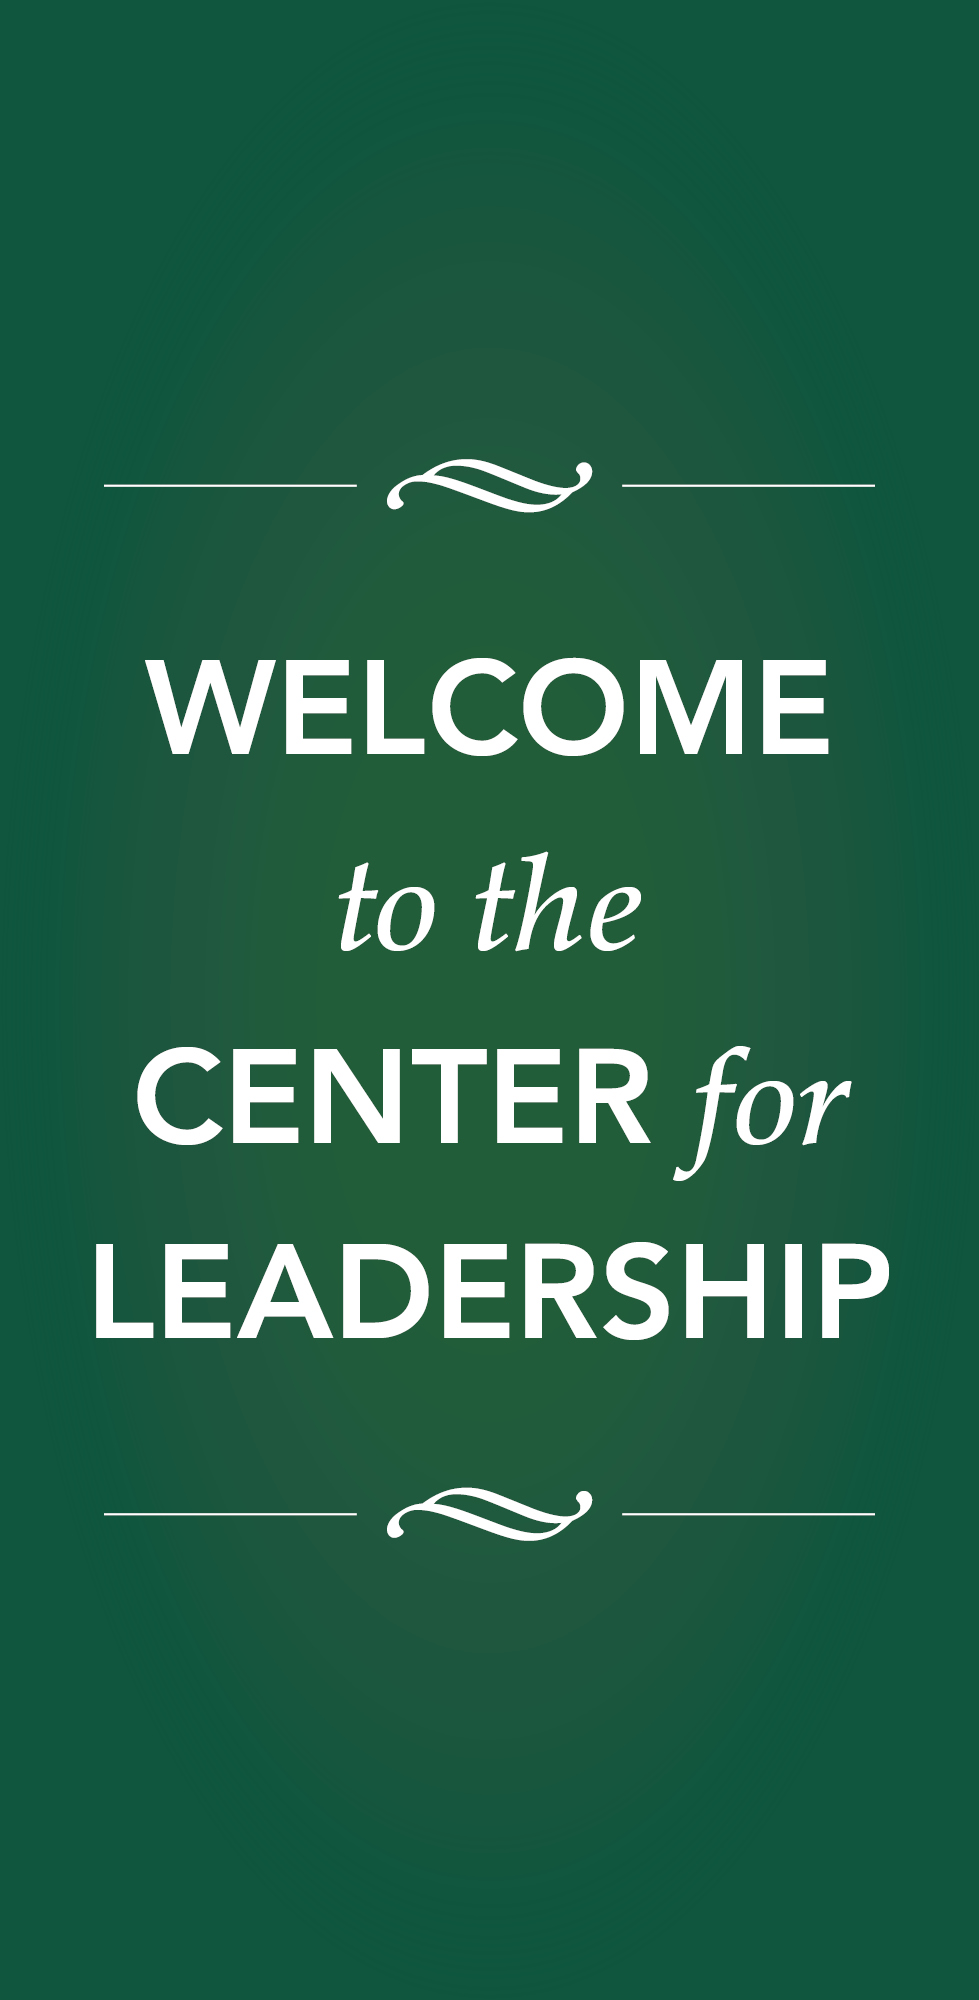 Welcome to the Center for Leadership